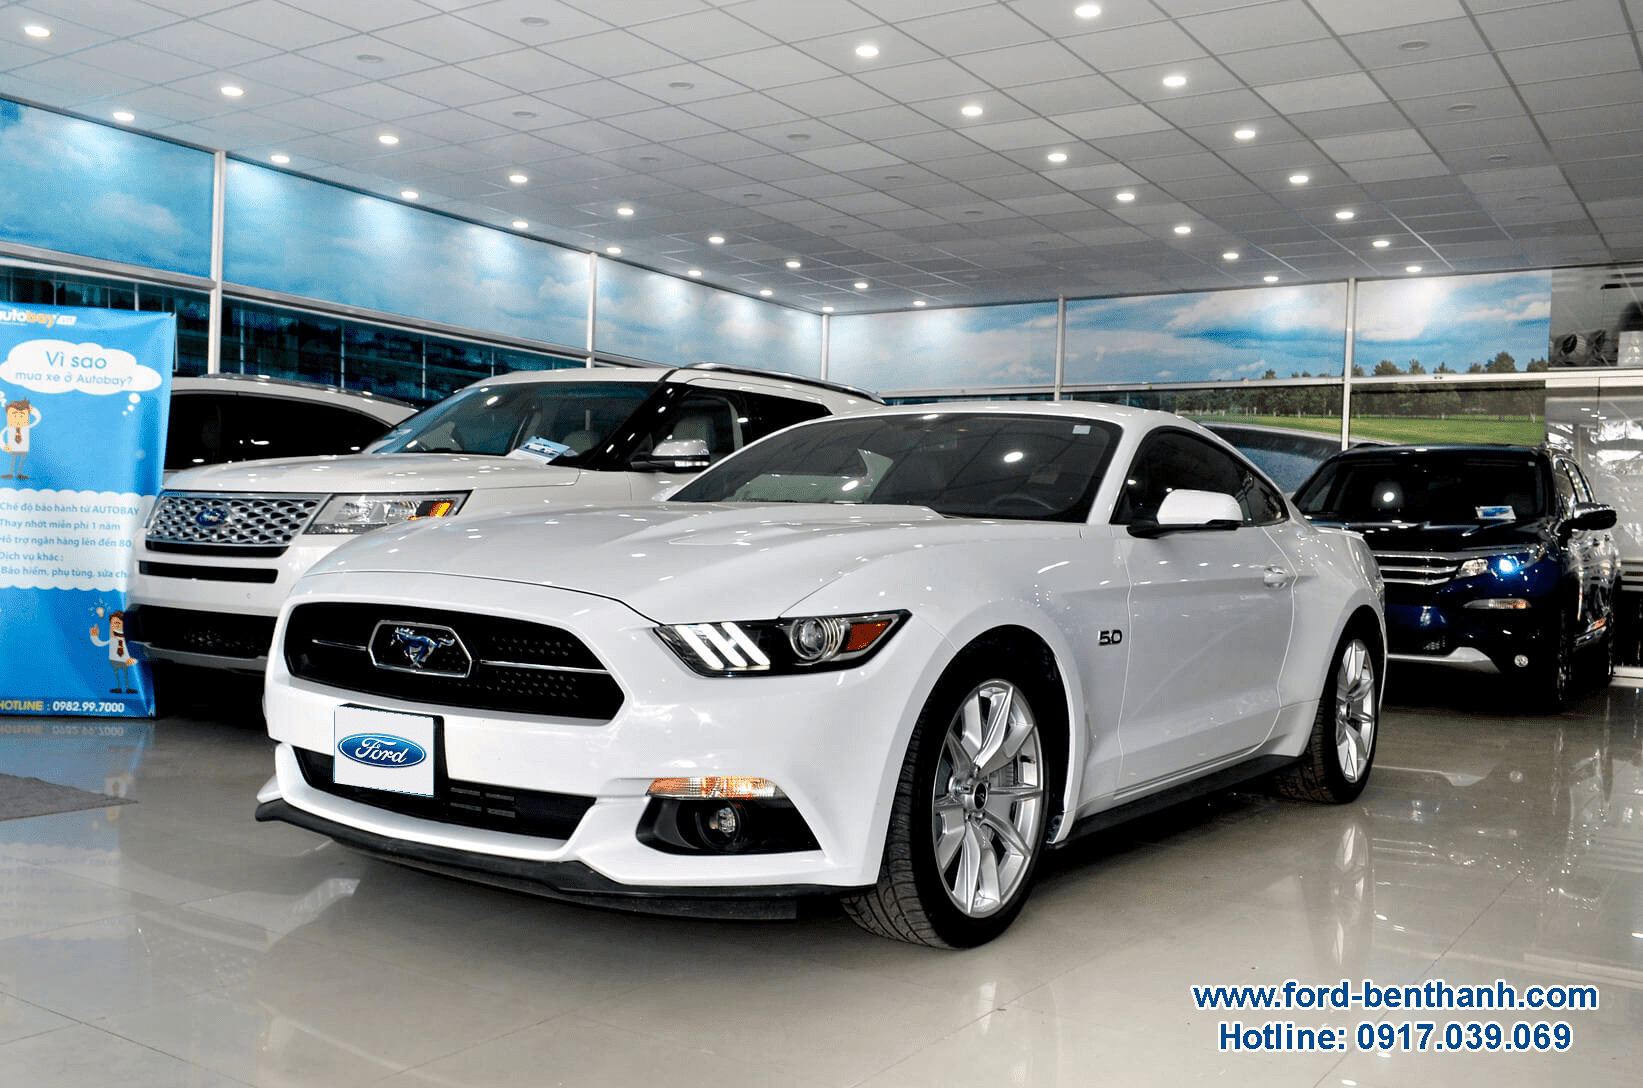 Ford Mustang Xe